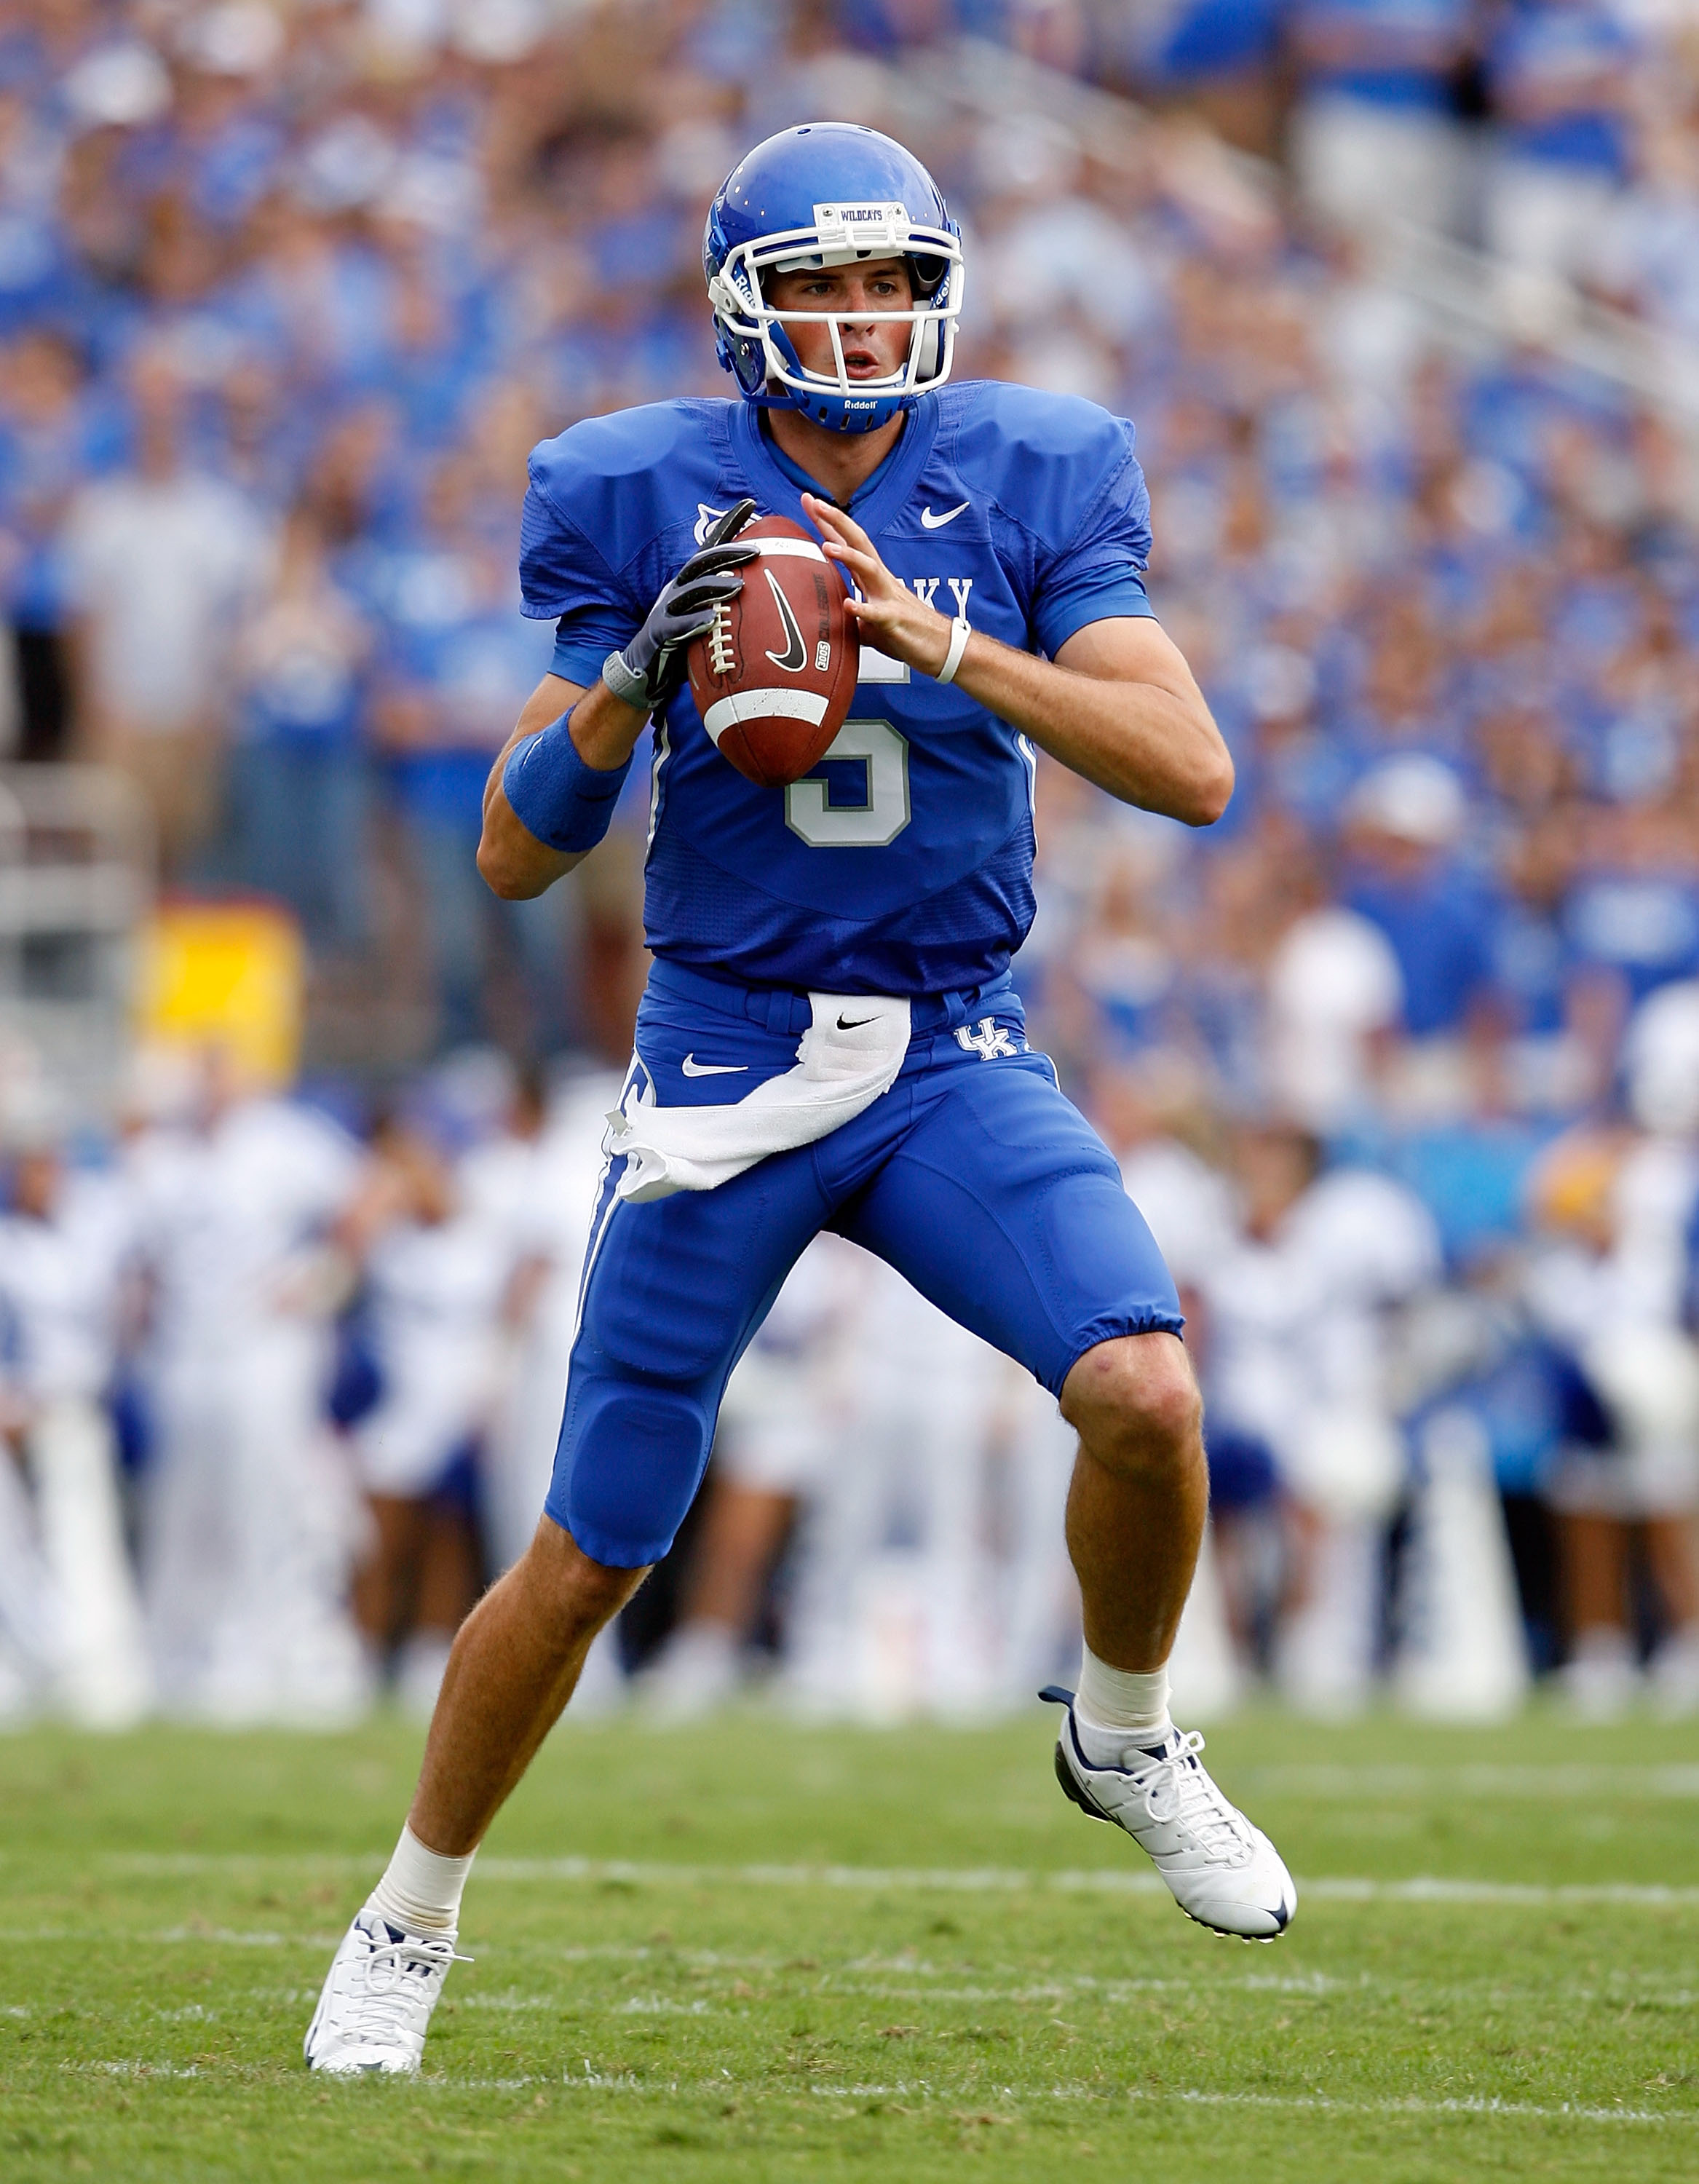 LEXINGTON, KY - SEPTEMBER 19:  Mike Hartline #5 of the Kentucky Wildcats throws a pass during the game against the Louisville Cardinals at Commonwealth Stadium on September 19, 2009 in Lexington, Kentucky.  (Photo by Andy Lyons/Getty Images)